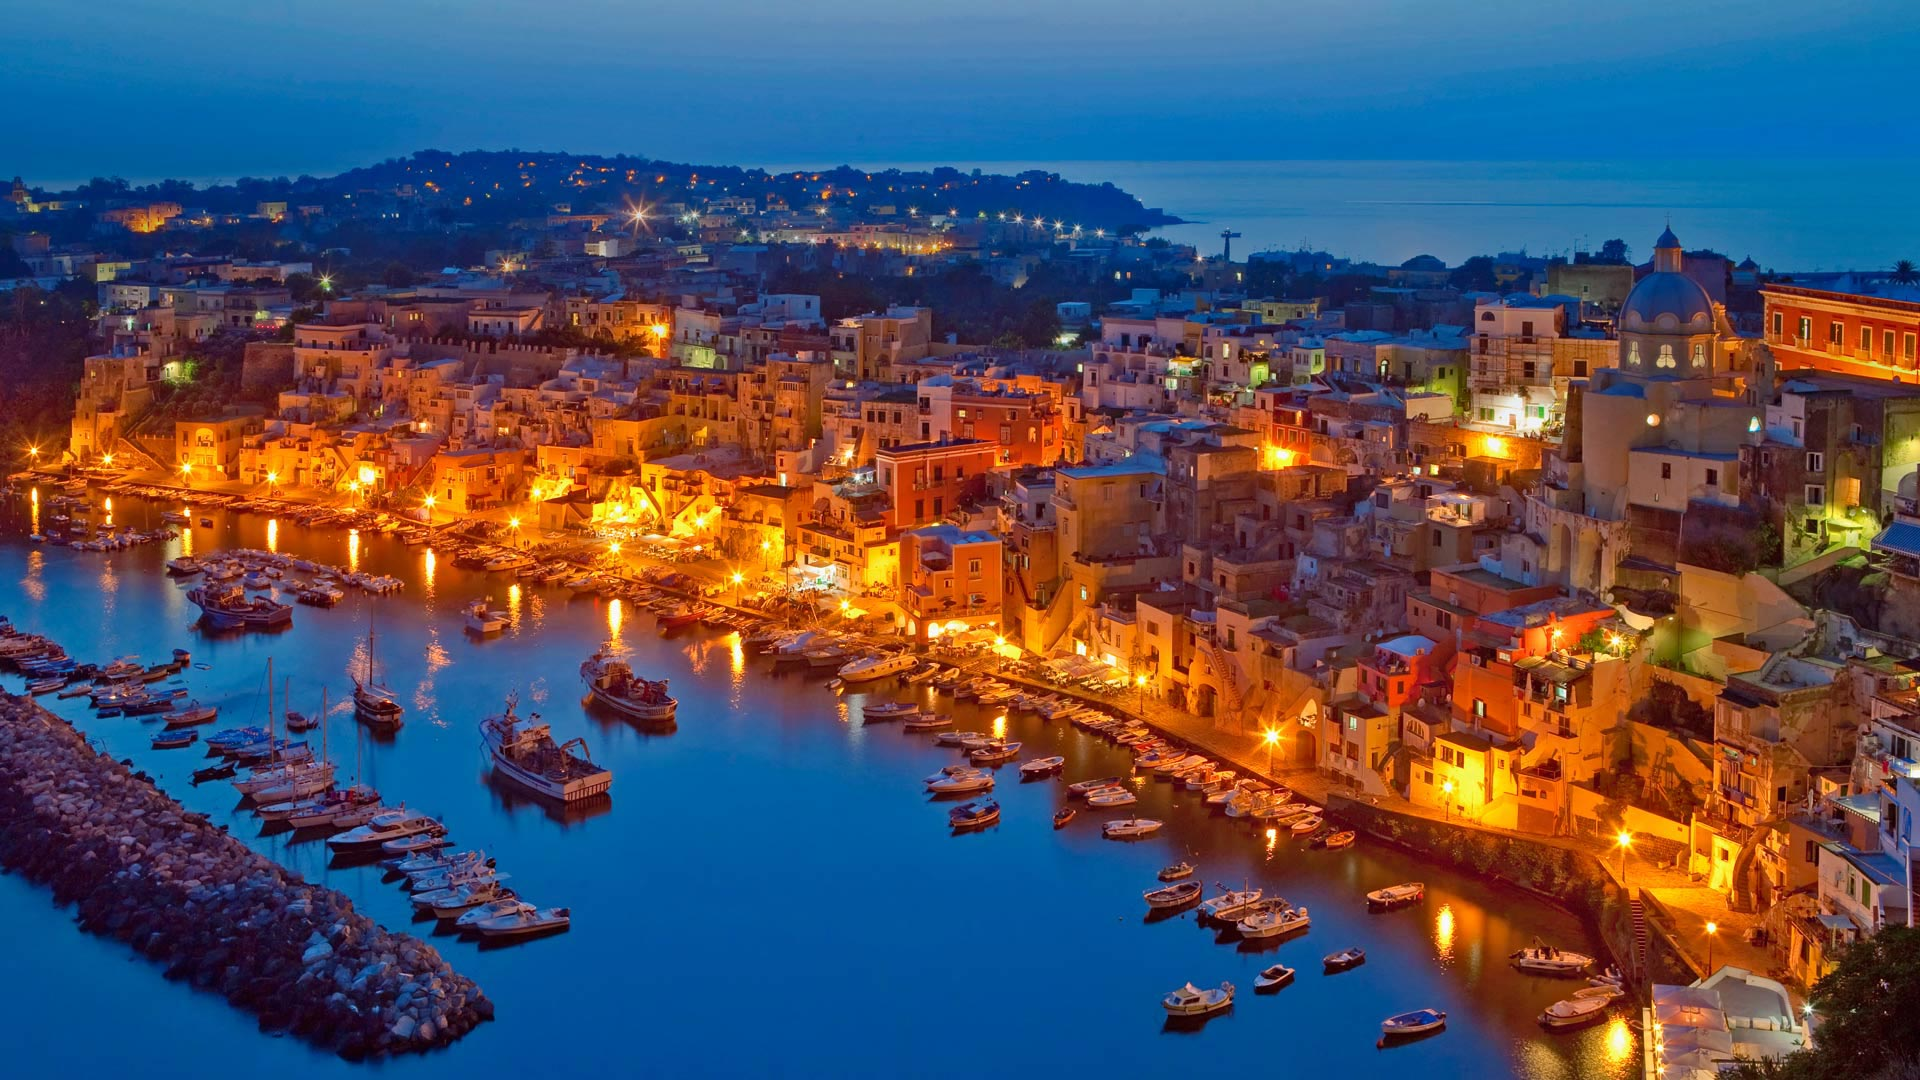 Procida Island in the Gulf of Naples, Italy (© Frank Chmura/age fotostock)